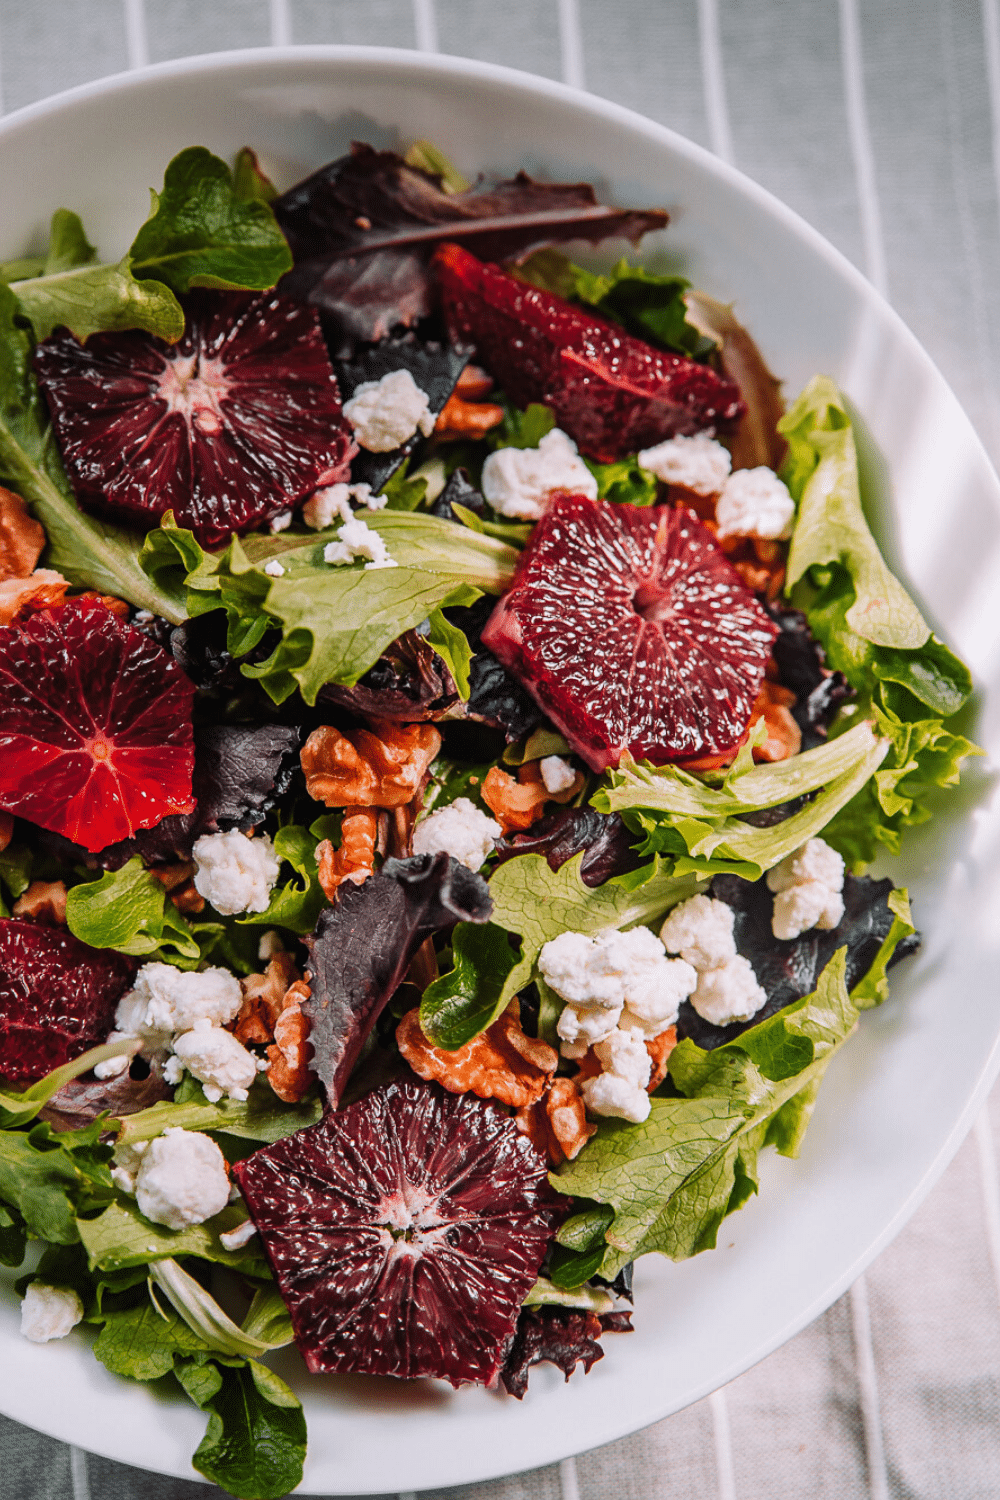 Seasonal winter citrus idea with a blood orange recipe in a healthy and filling salad and flavorful and light vinaigrette. #bloodoranges #wintercitrus #recipe